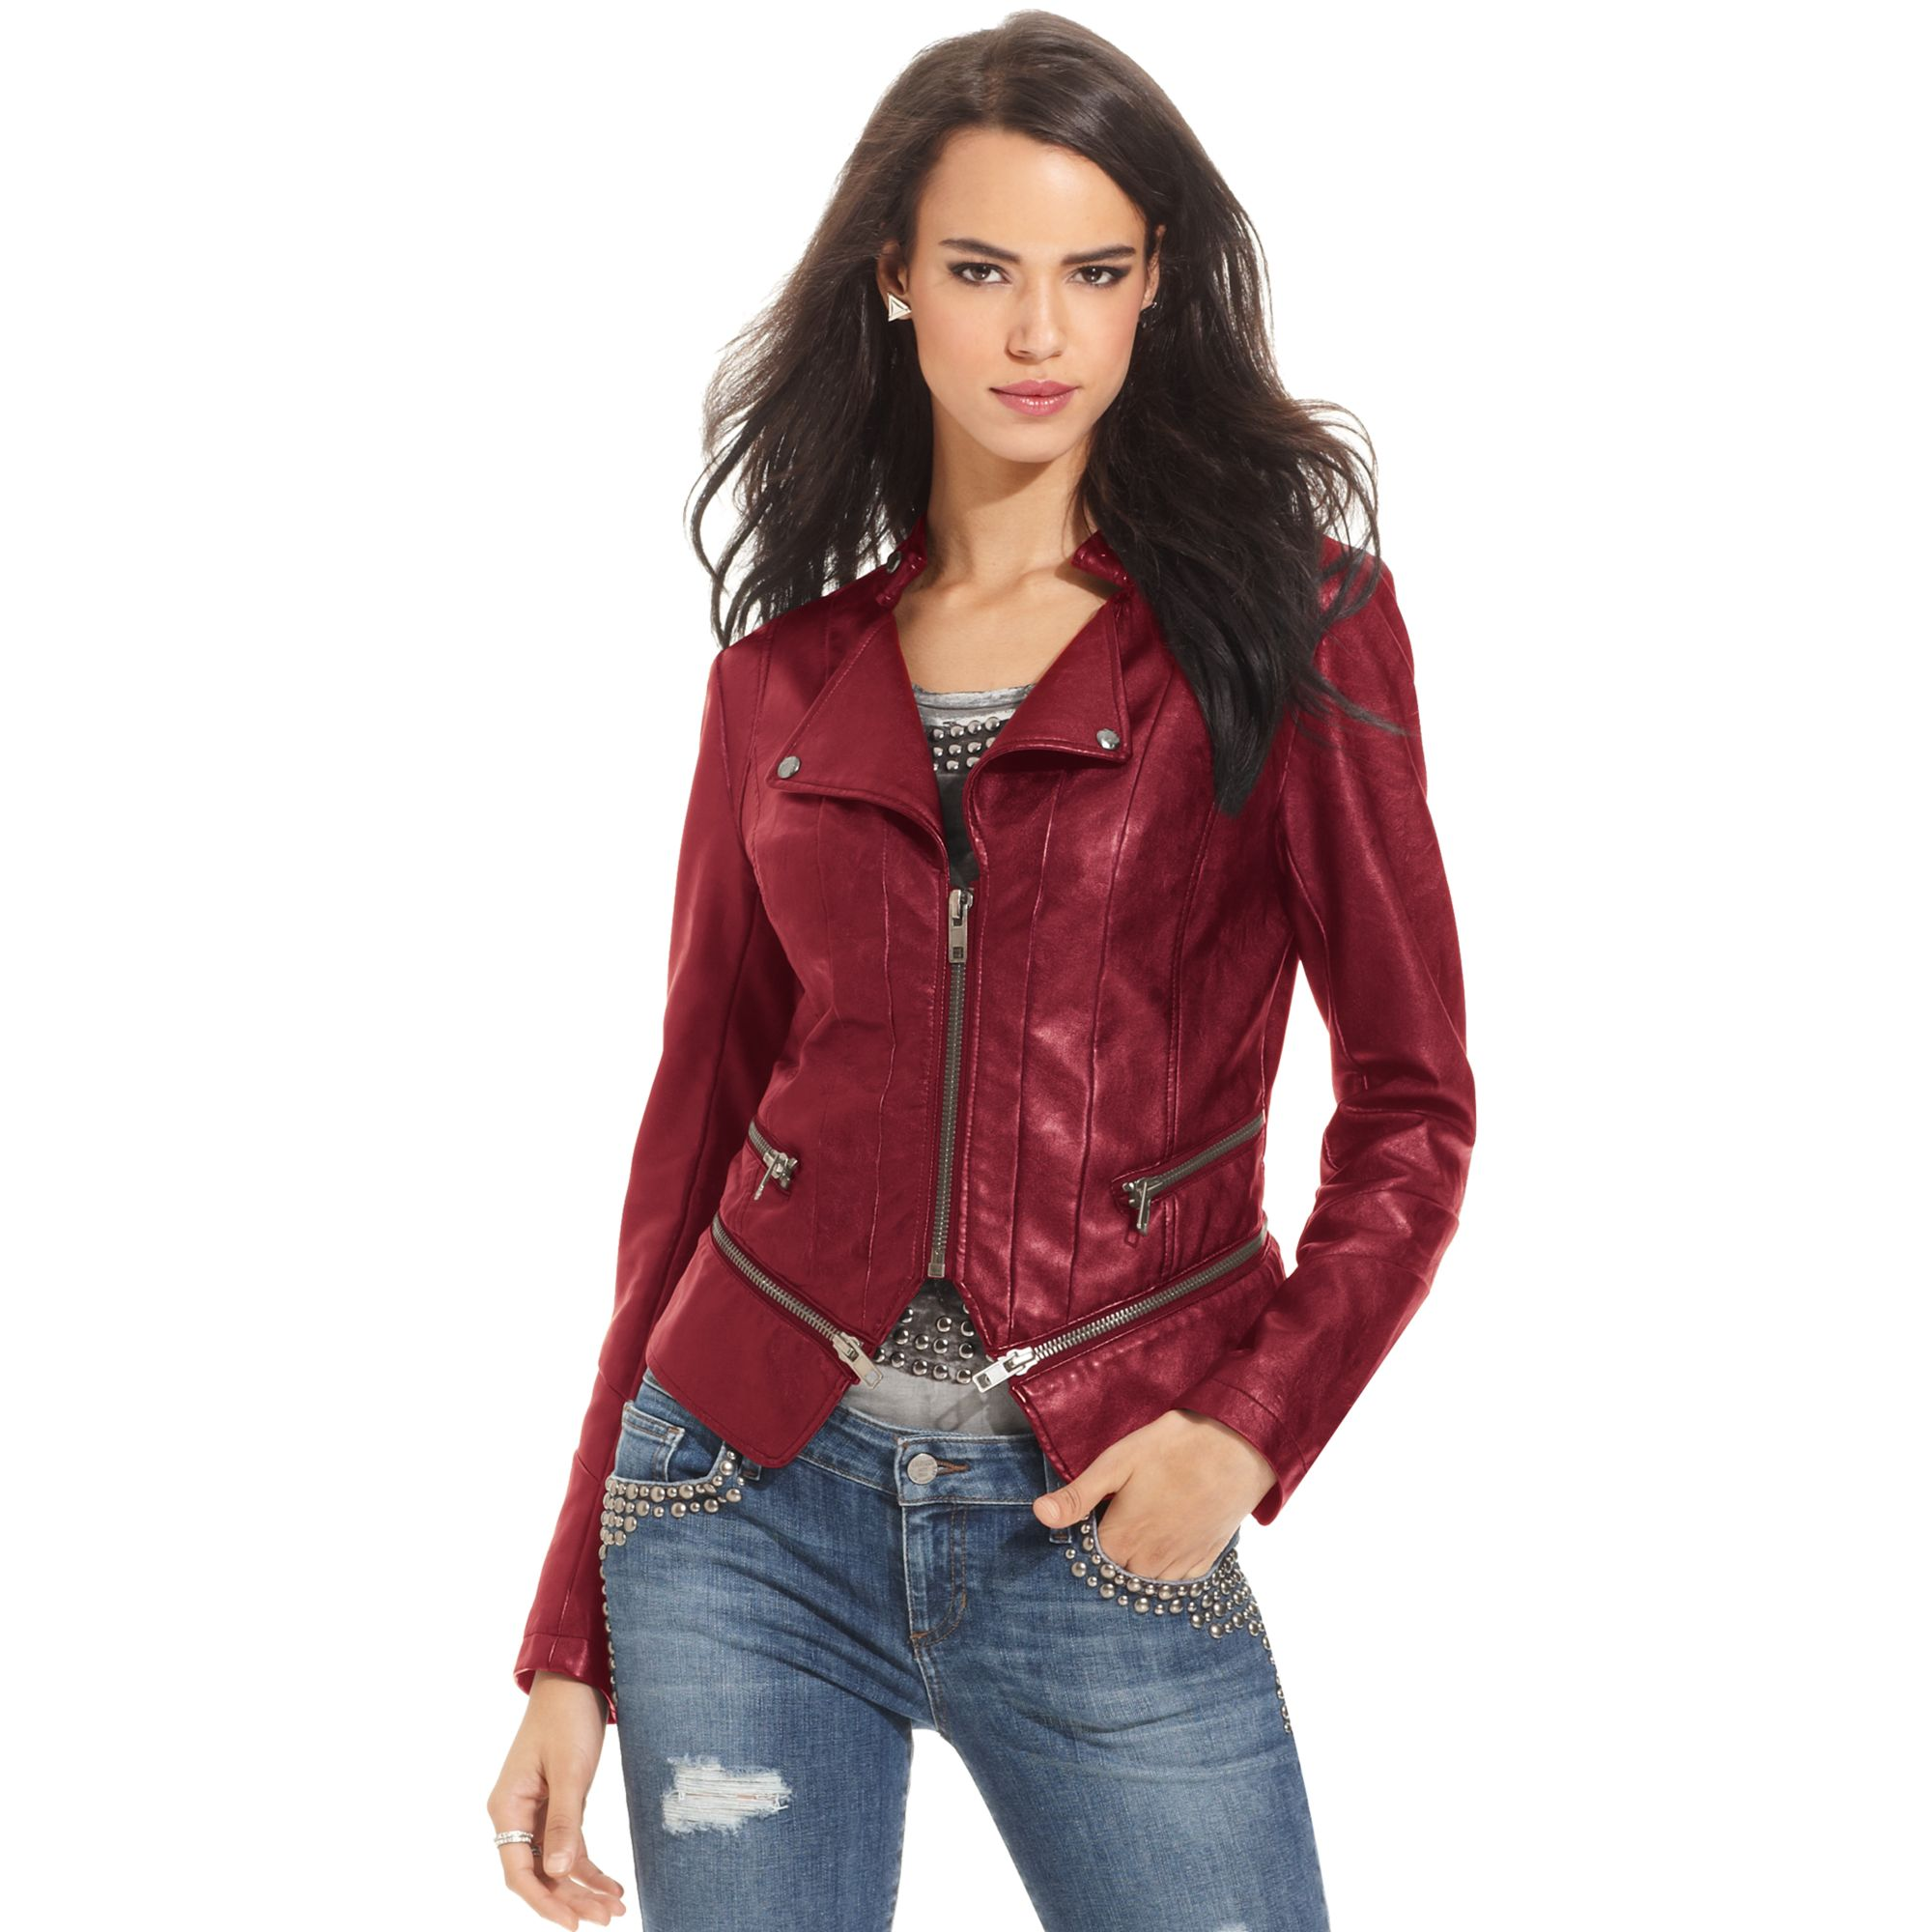 Lyst - Guess Fauxleather Jacket in Red